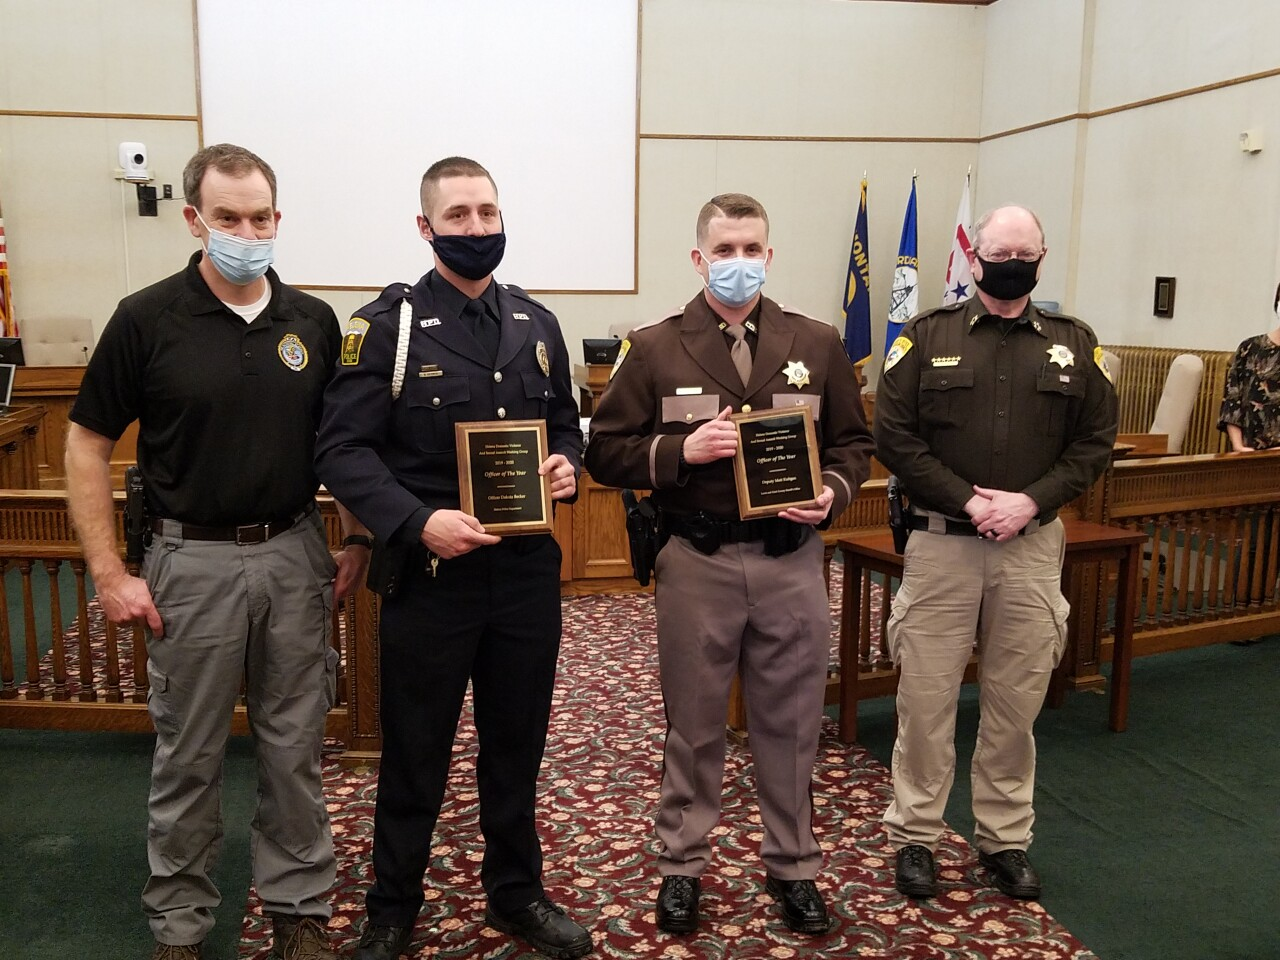 Helena Domestic Violence and Sexual Assault Working Group Announces Officer of the Year Winners